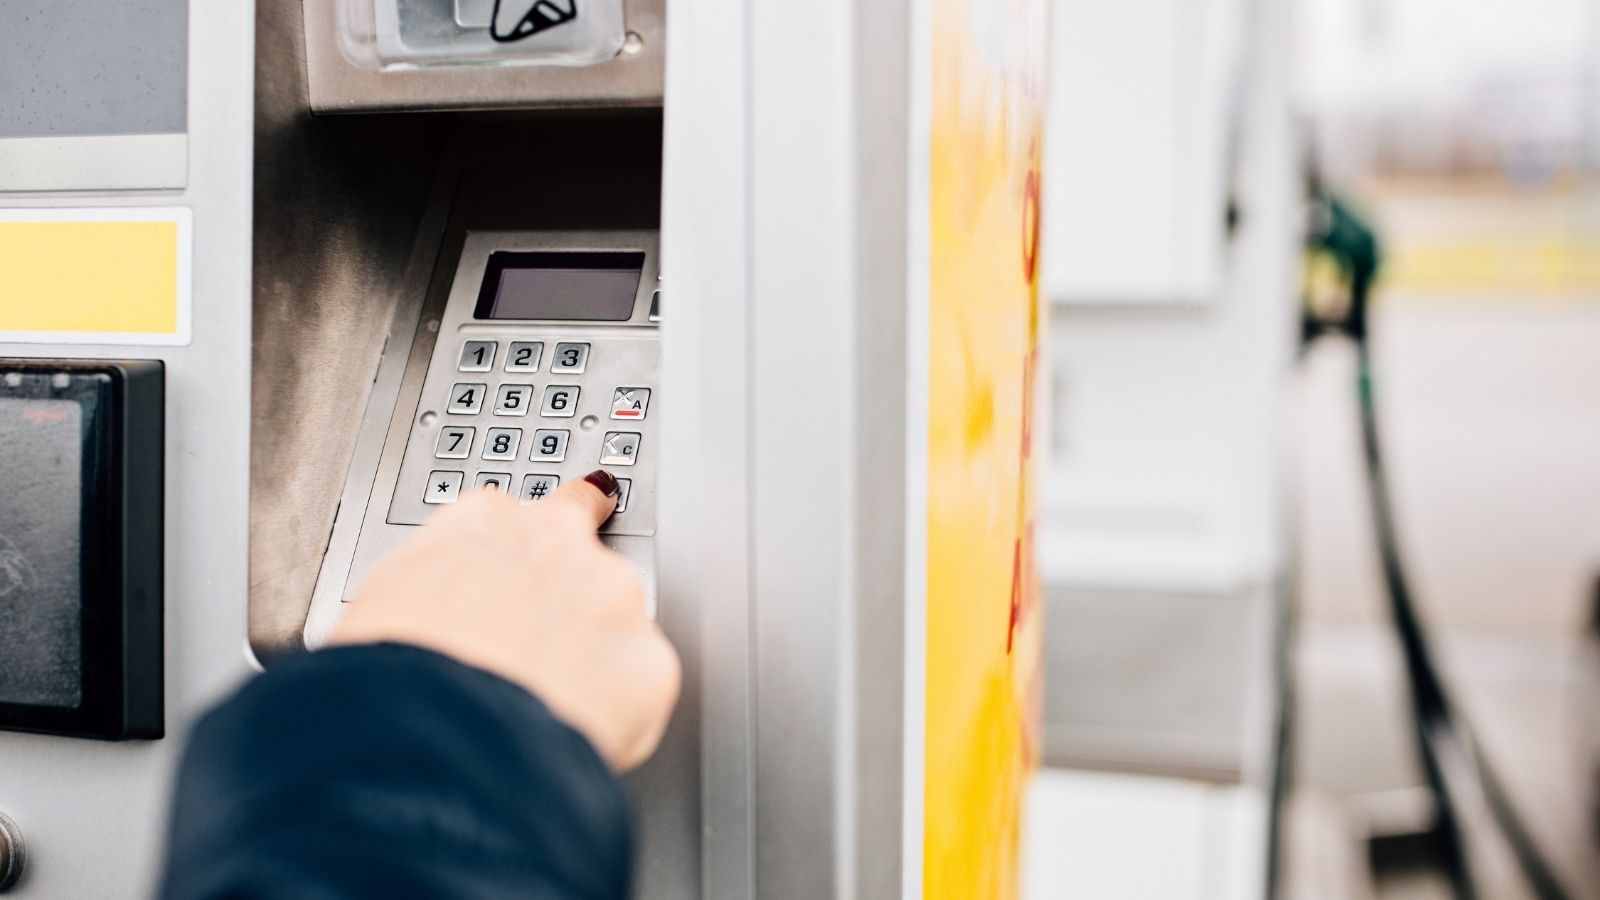 Fuel Cards UK: How to Keep Your Fuel Cards Secure